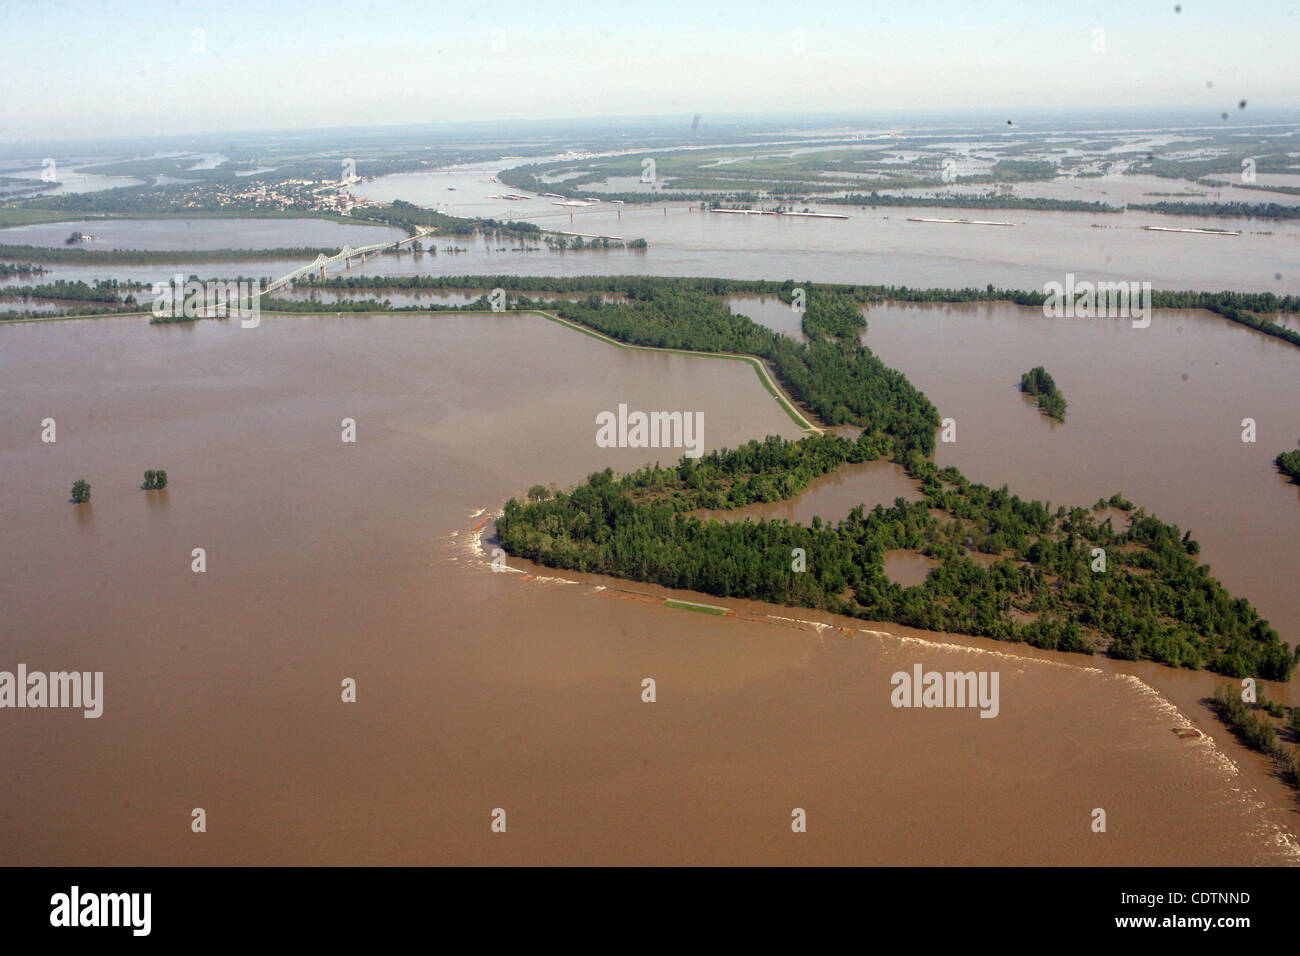 May 03, 2011 - Missouri, U S  - Water rushes through the breach in